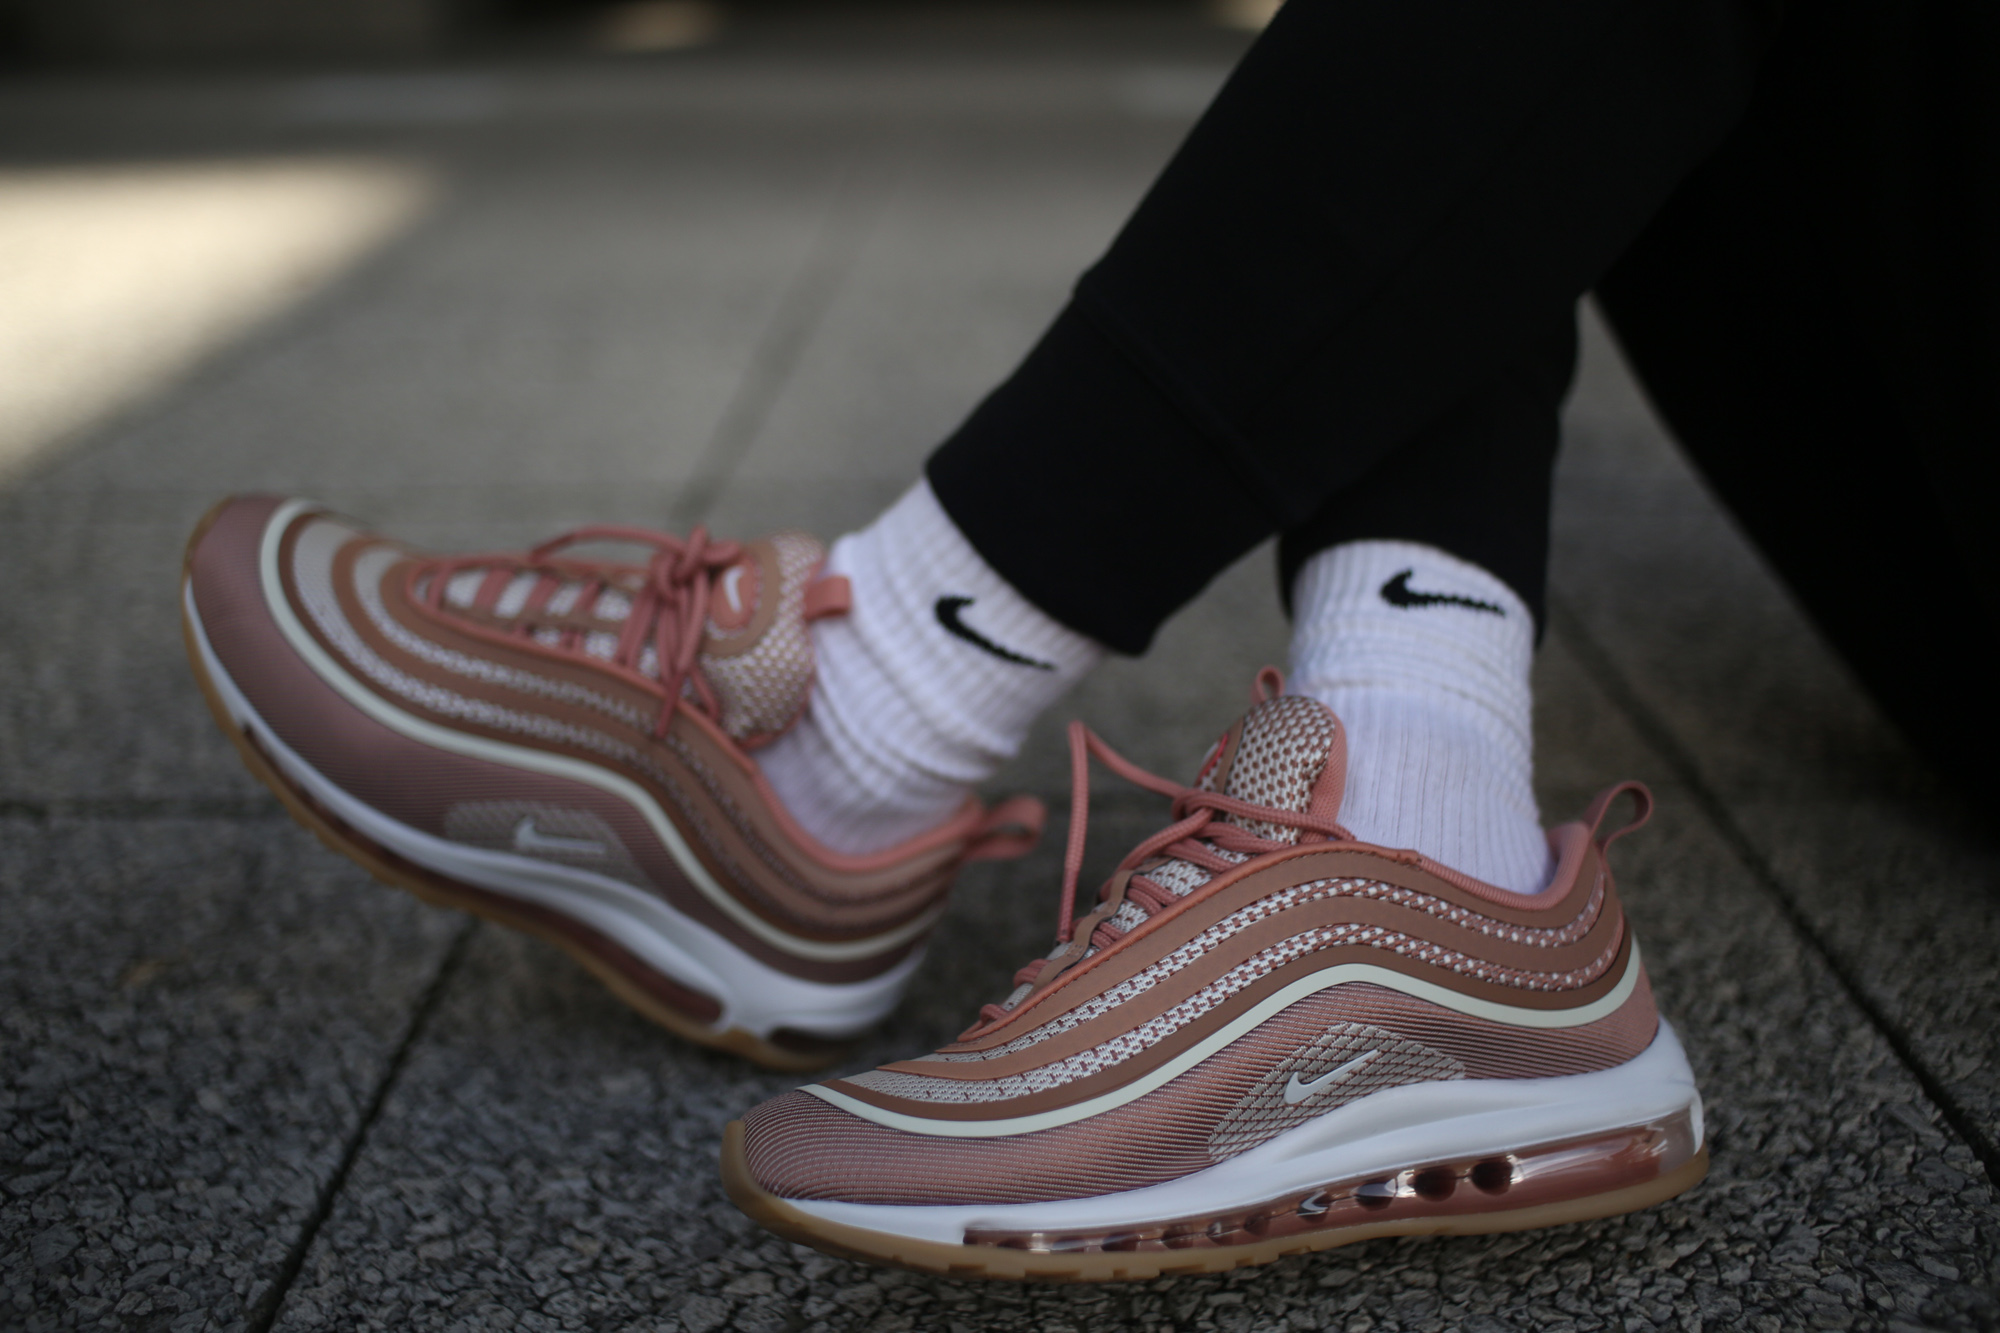 Nike Air Max 97 rose gold 2